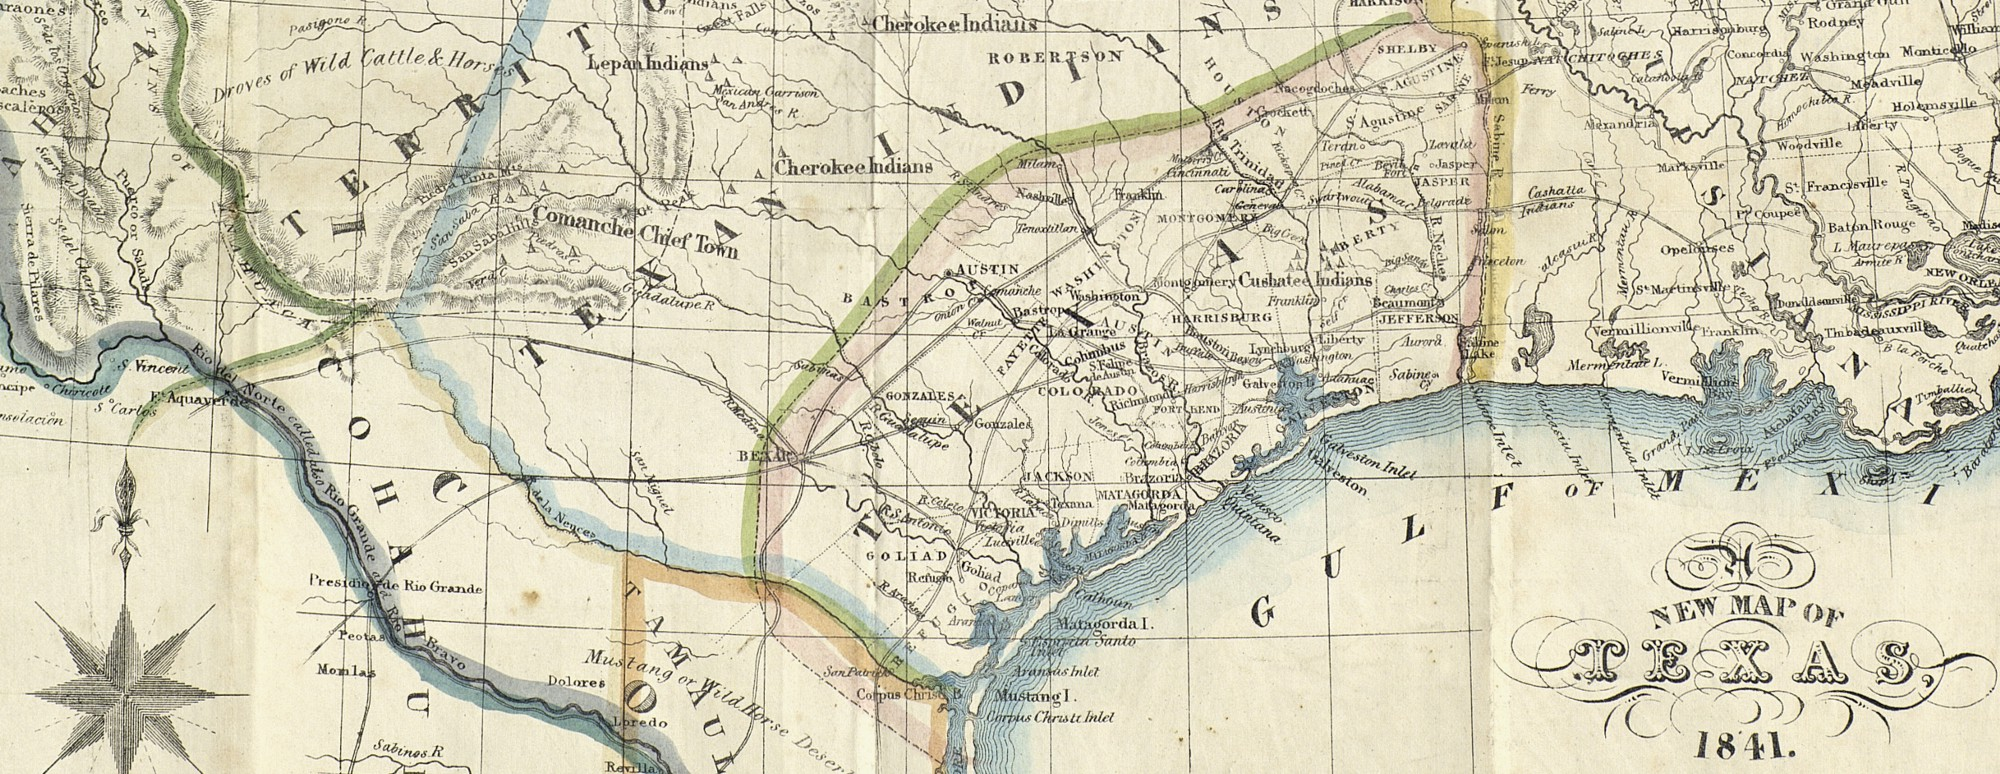 A new map of texas 1841 save texas history medium nicholas doran maillard a new map of texas new york day haghe 1841 map 93862 frank and carol holcomb map collection archives and records program gumiabroncs Images